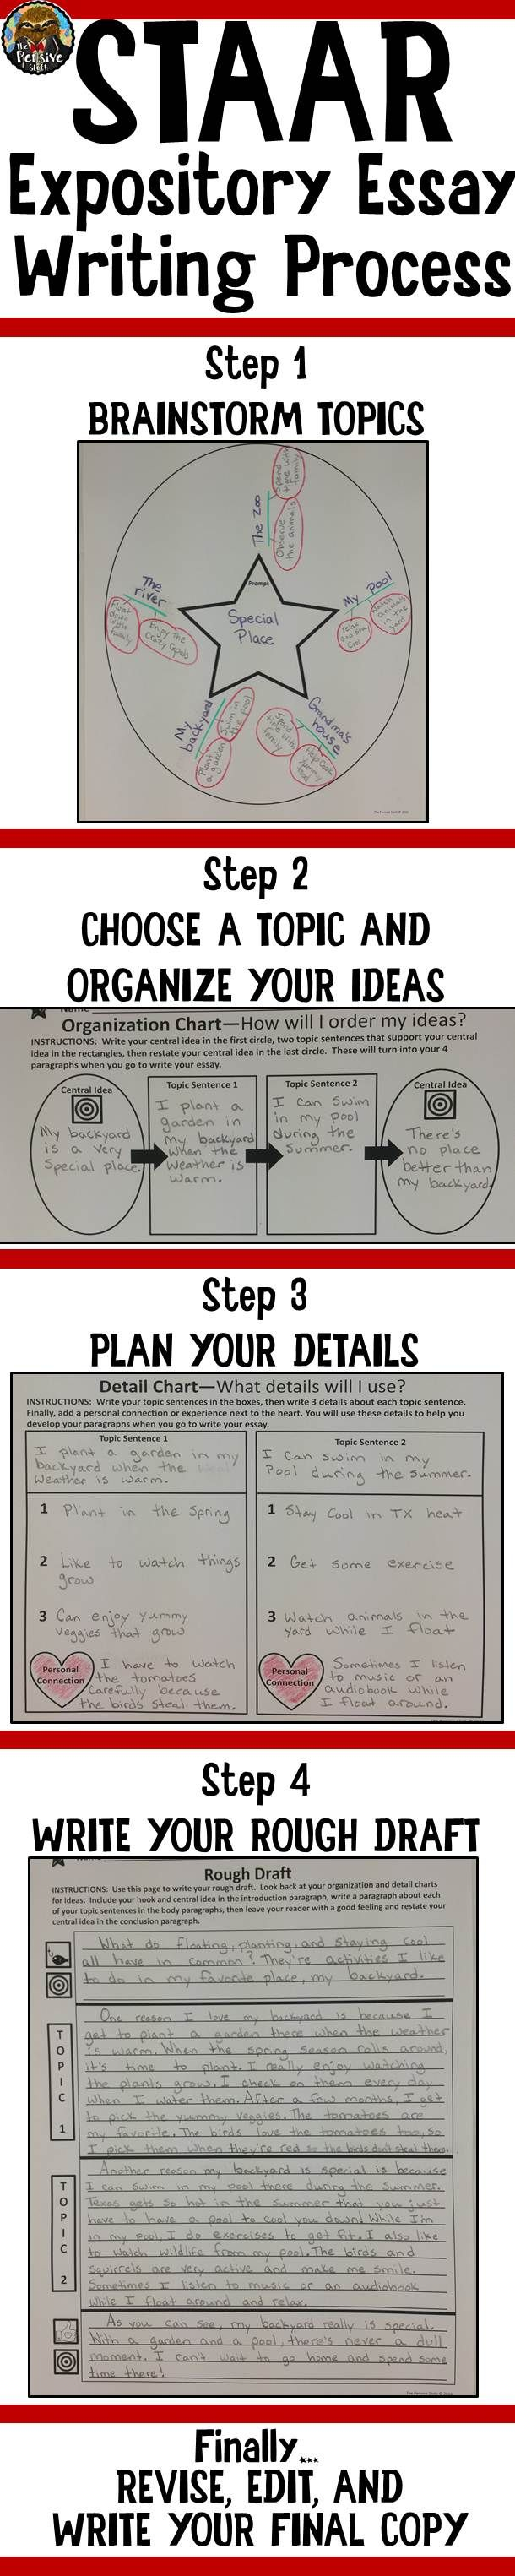 4th grade staar writing expository essay graphic organizers staar expository essay graphic organizers to help struggling students succeed on the grade writing test description there are 4 graphic organizers and a